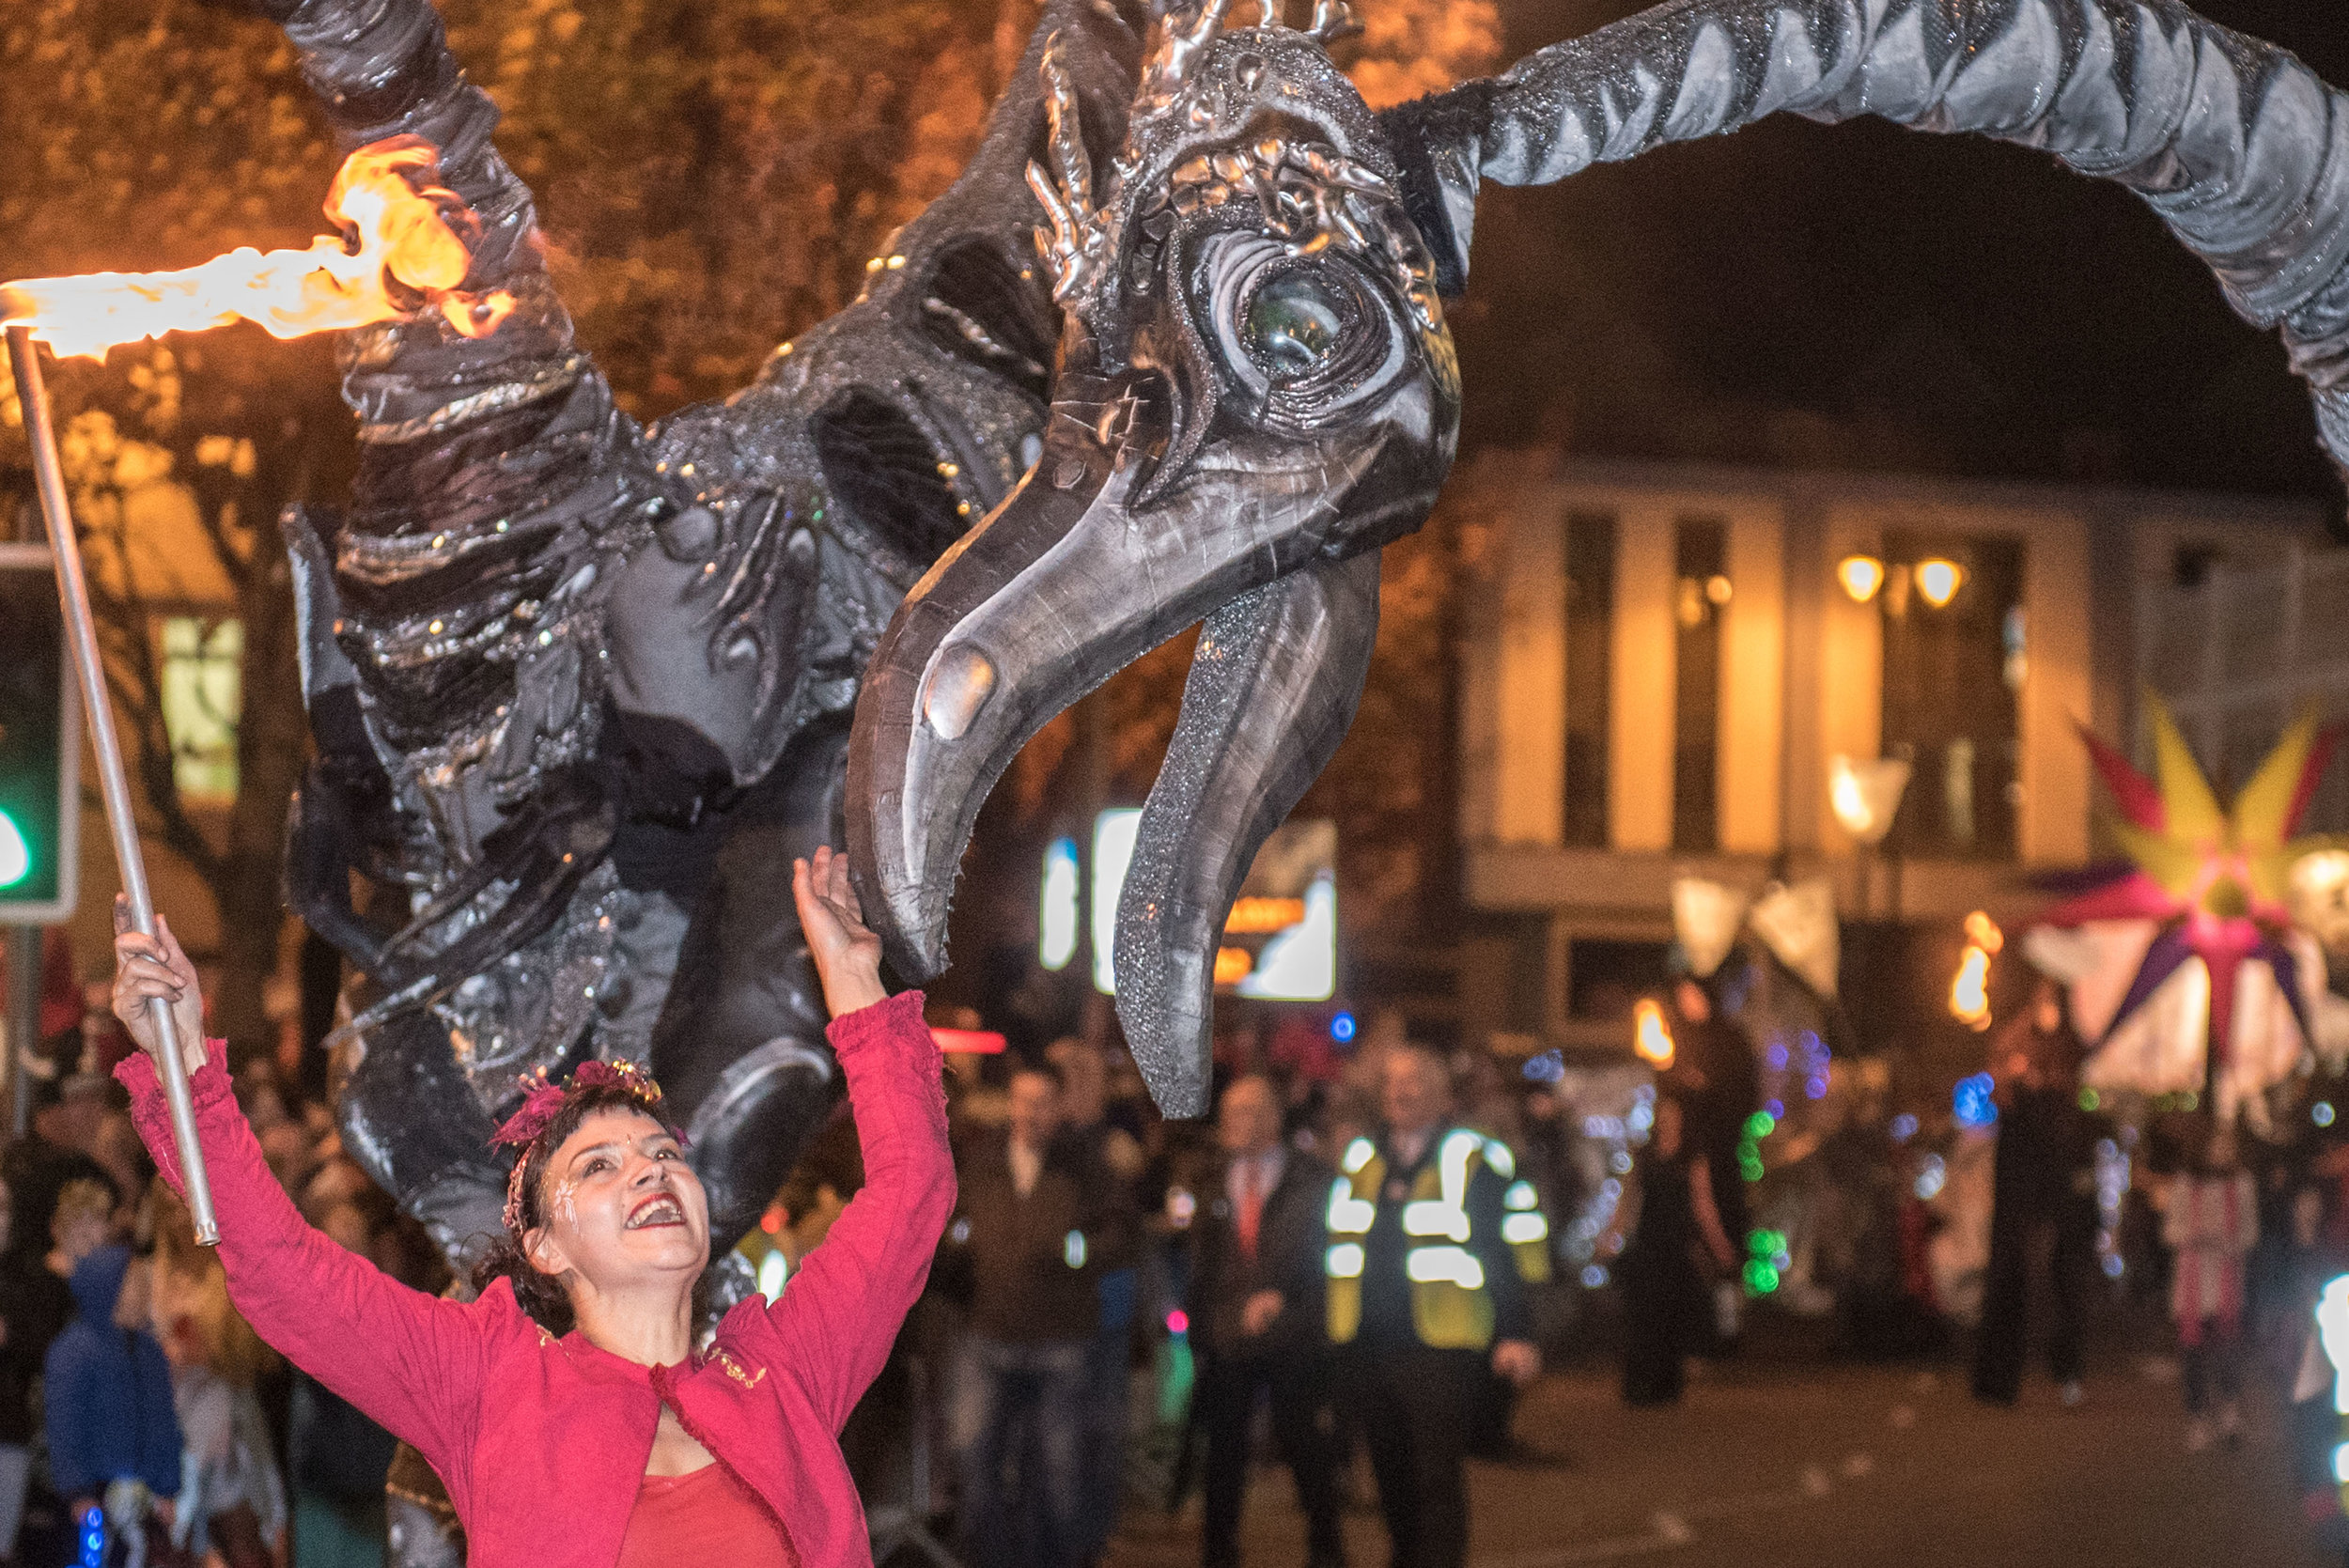 No fee for reproductionThe Hallowe'en Carnival in Derry-Londonderry which this year celebrates it's 30th anniversary and has entertained and entrapped tens of thousands of people over the last four days. Picture Martin McKeown. Inpresspics.com. 31.10.16